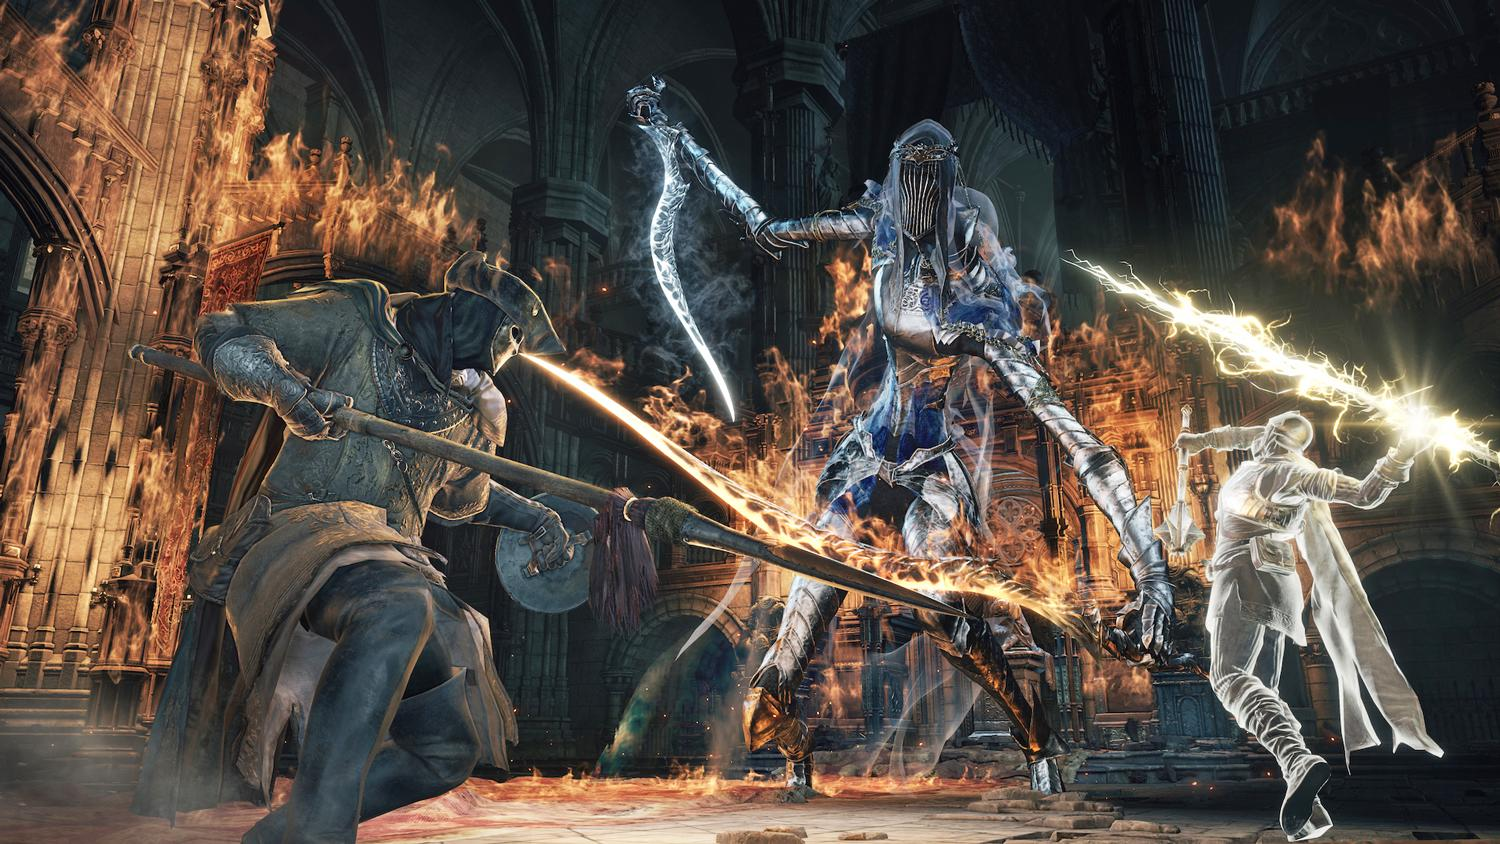 Downloading Dark Souls 3 Early Makes The Game Even Harder Engadget